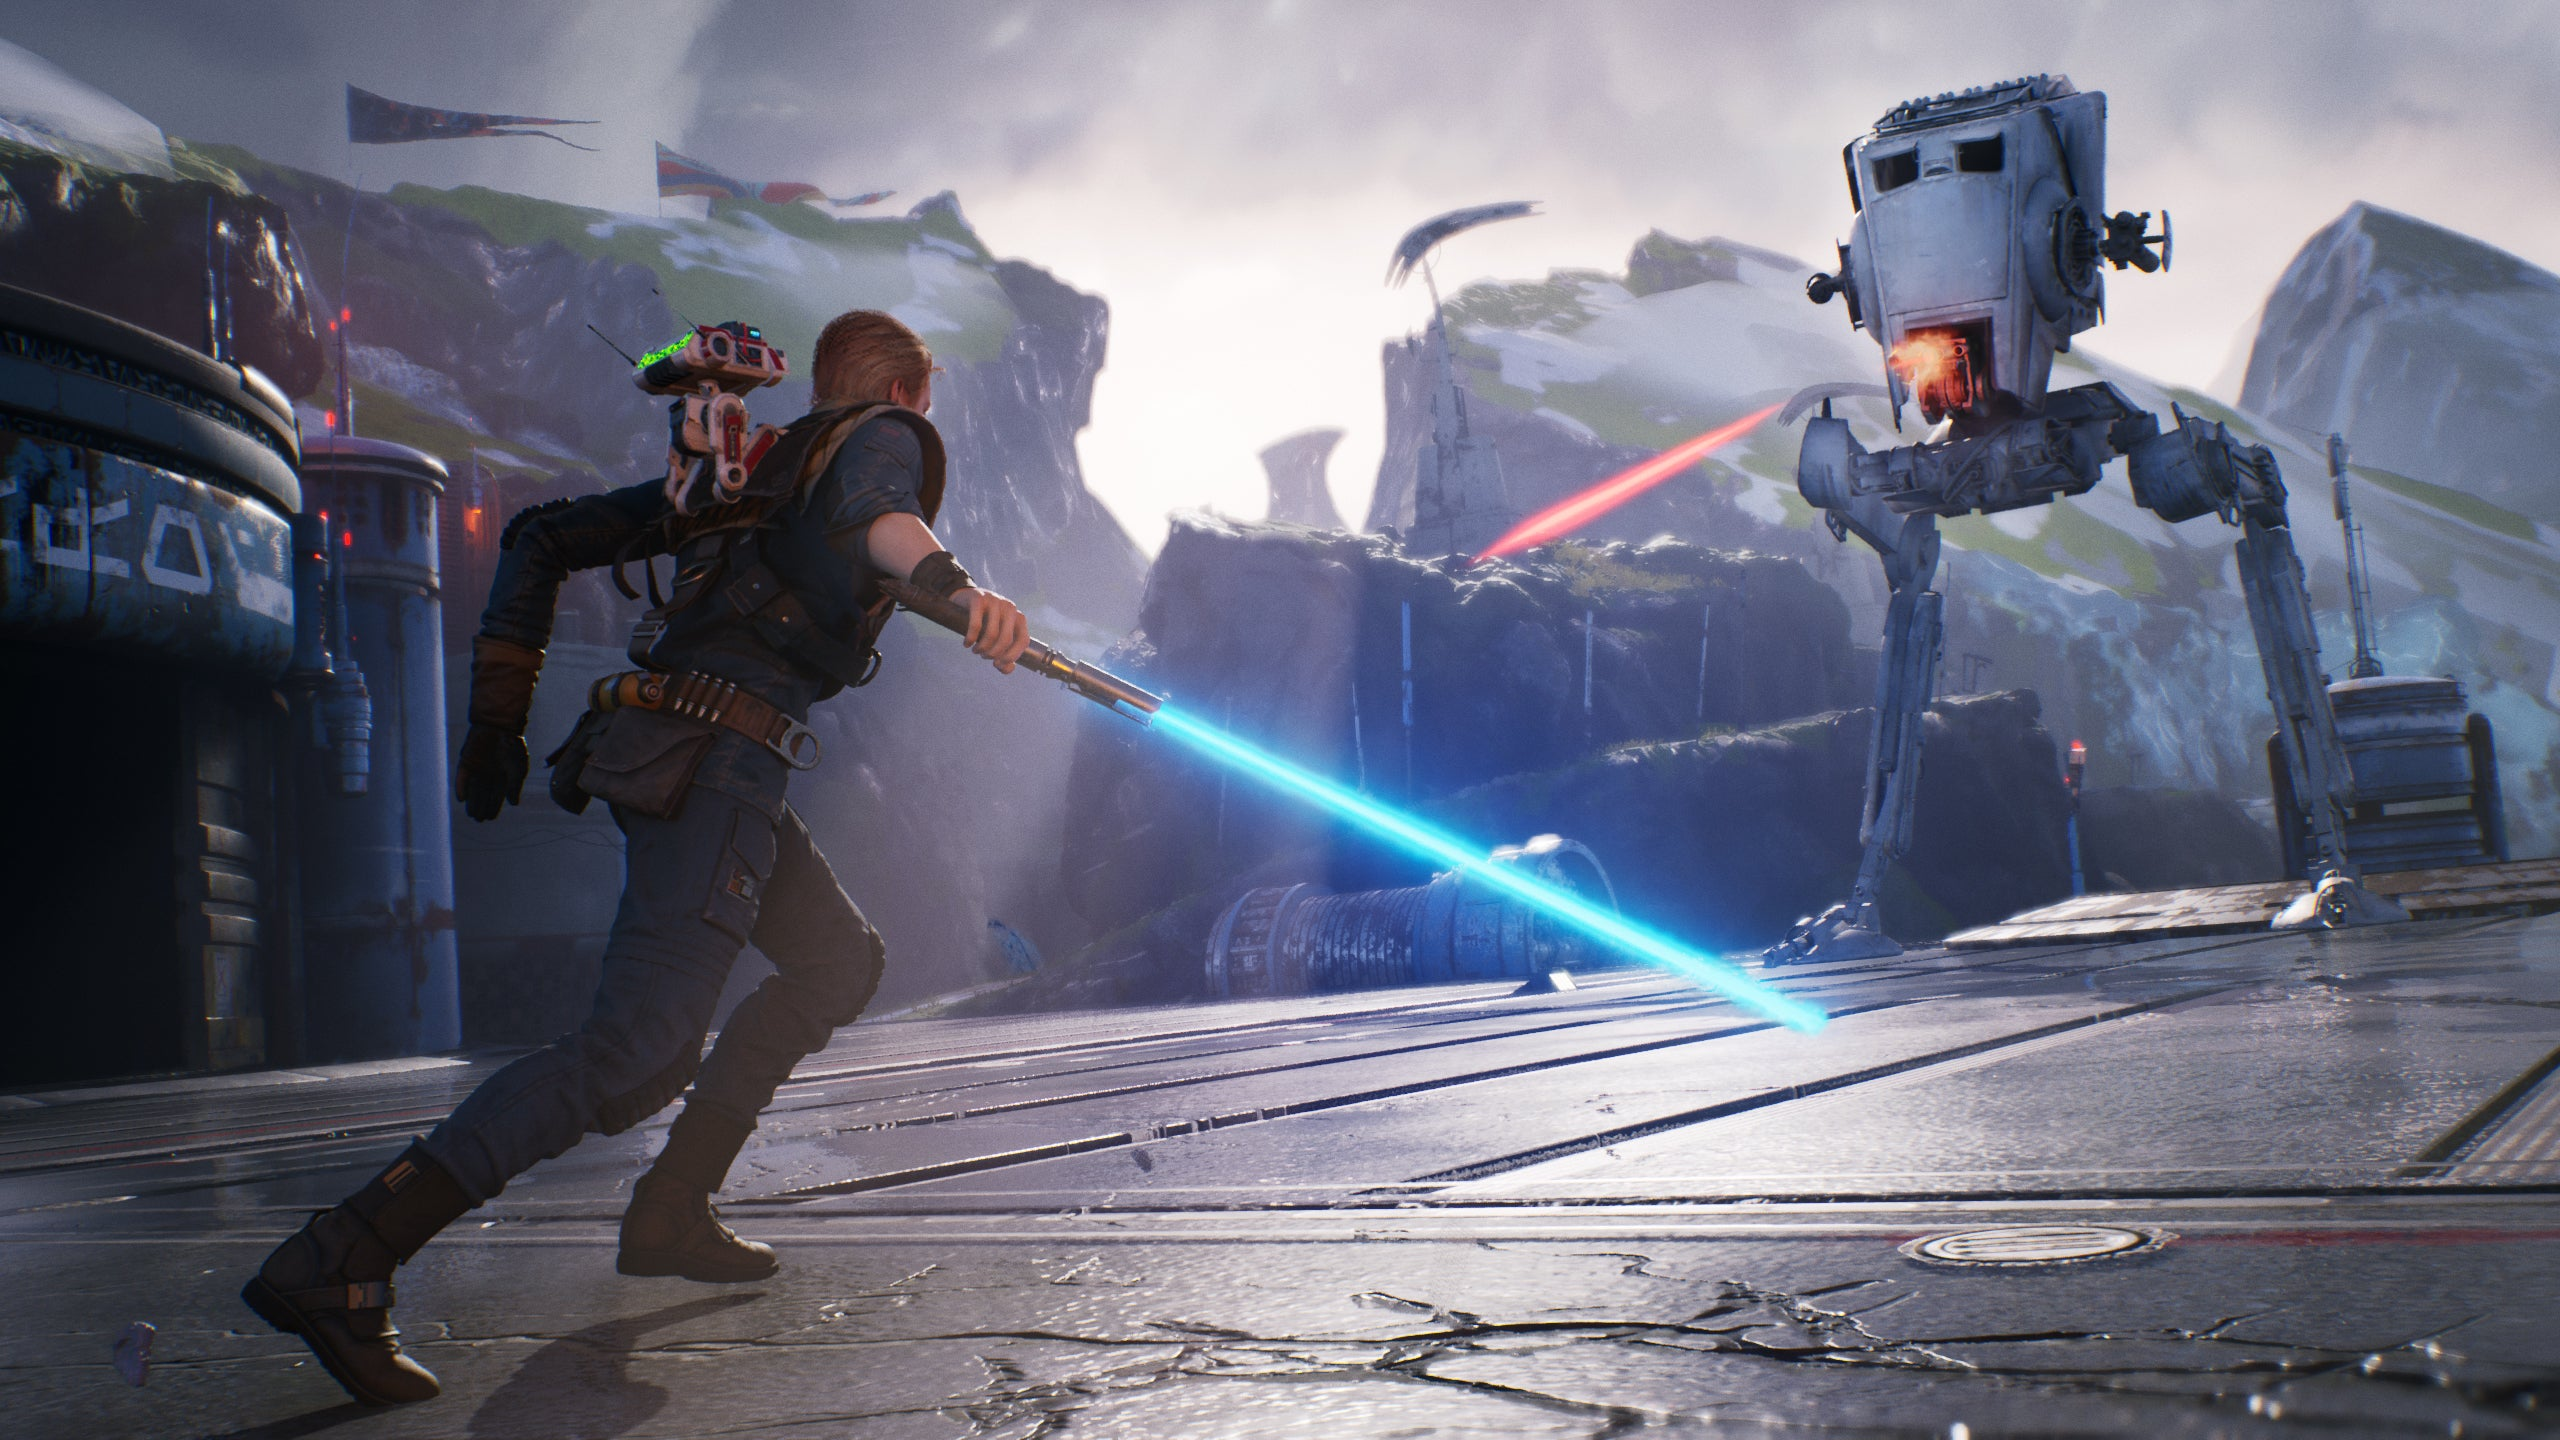 Maverick, One Of EA's Star Wars Projects, Has Apparently Leaked Onto The PlayStation Network.